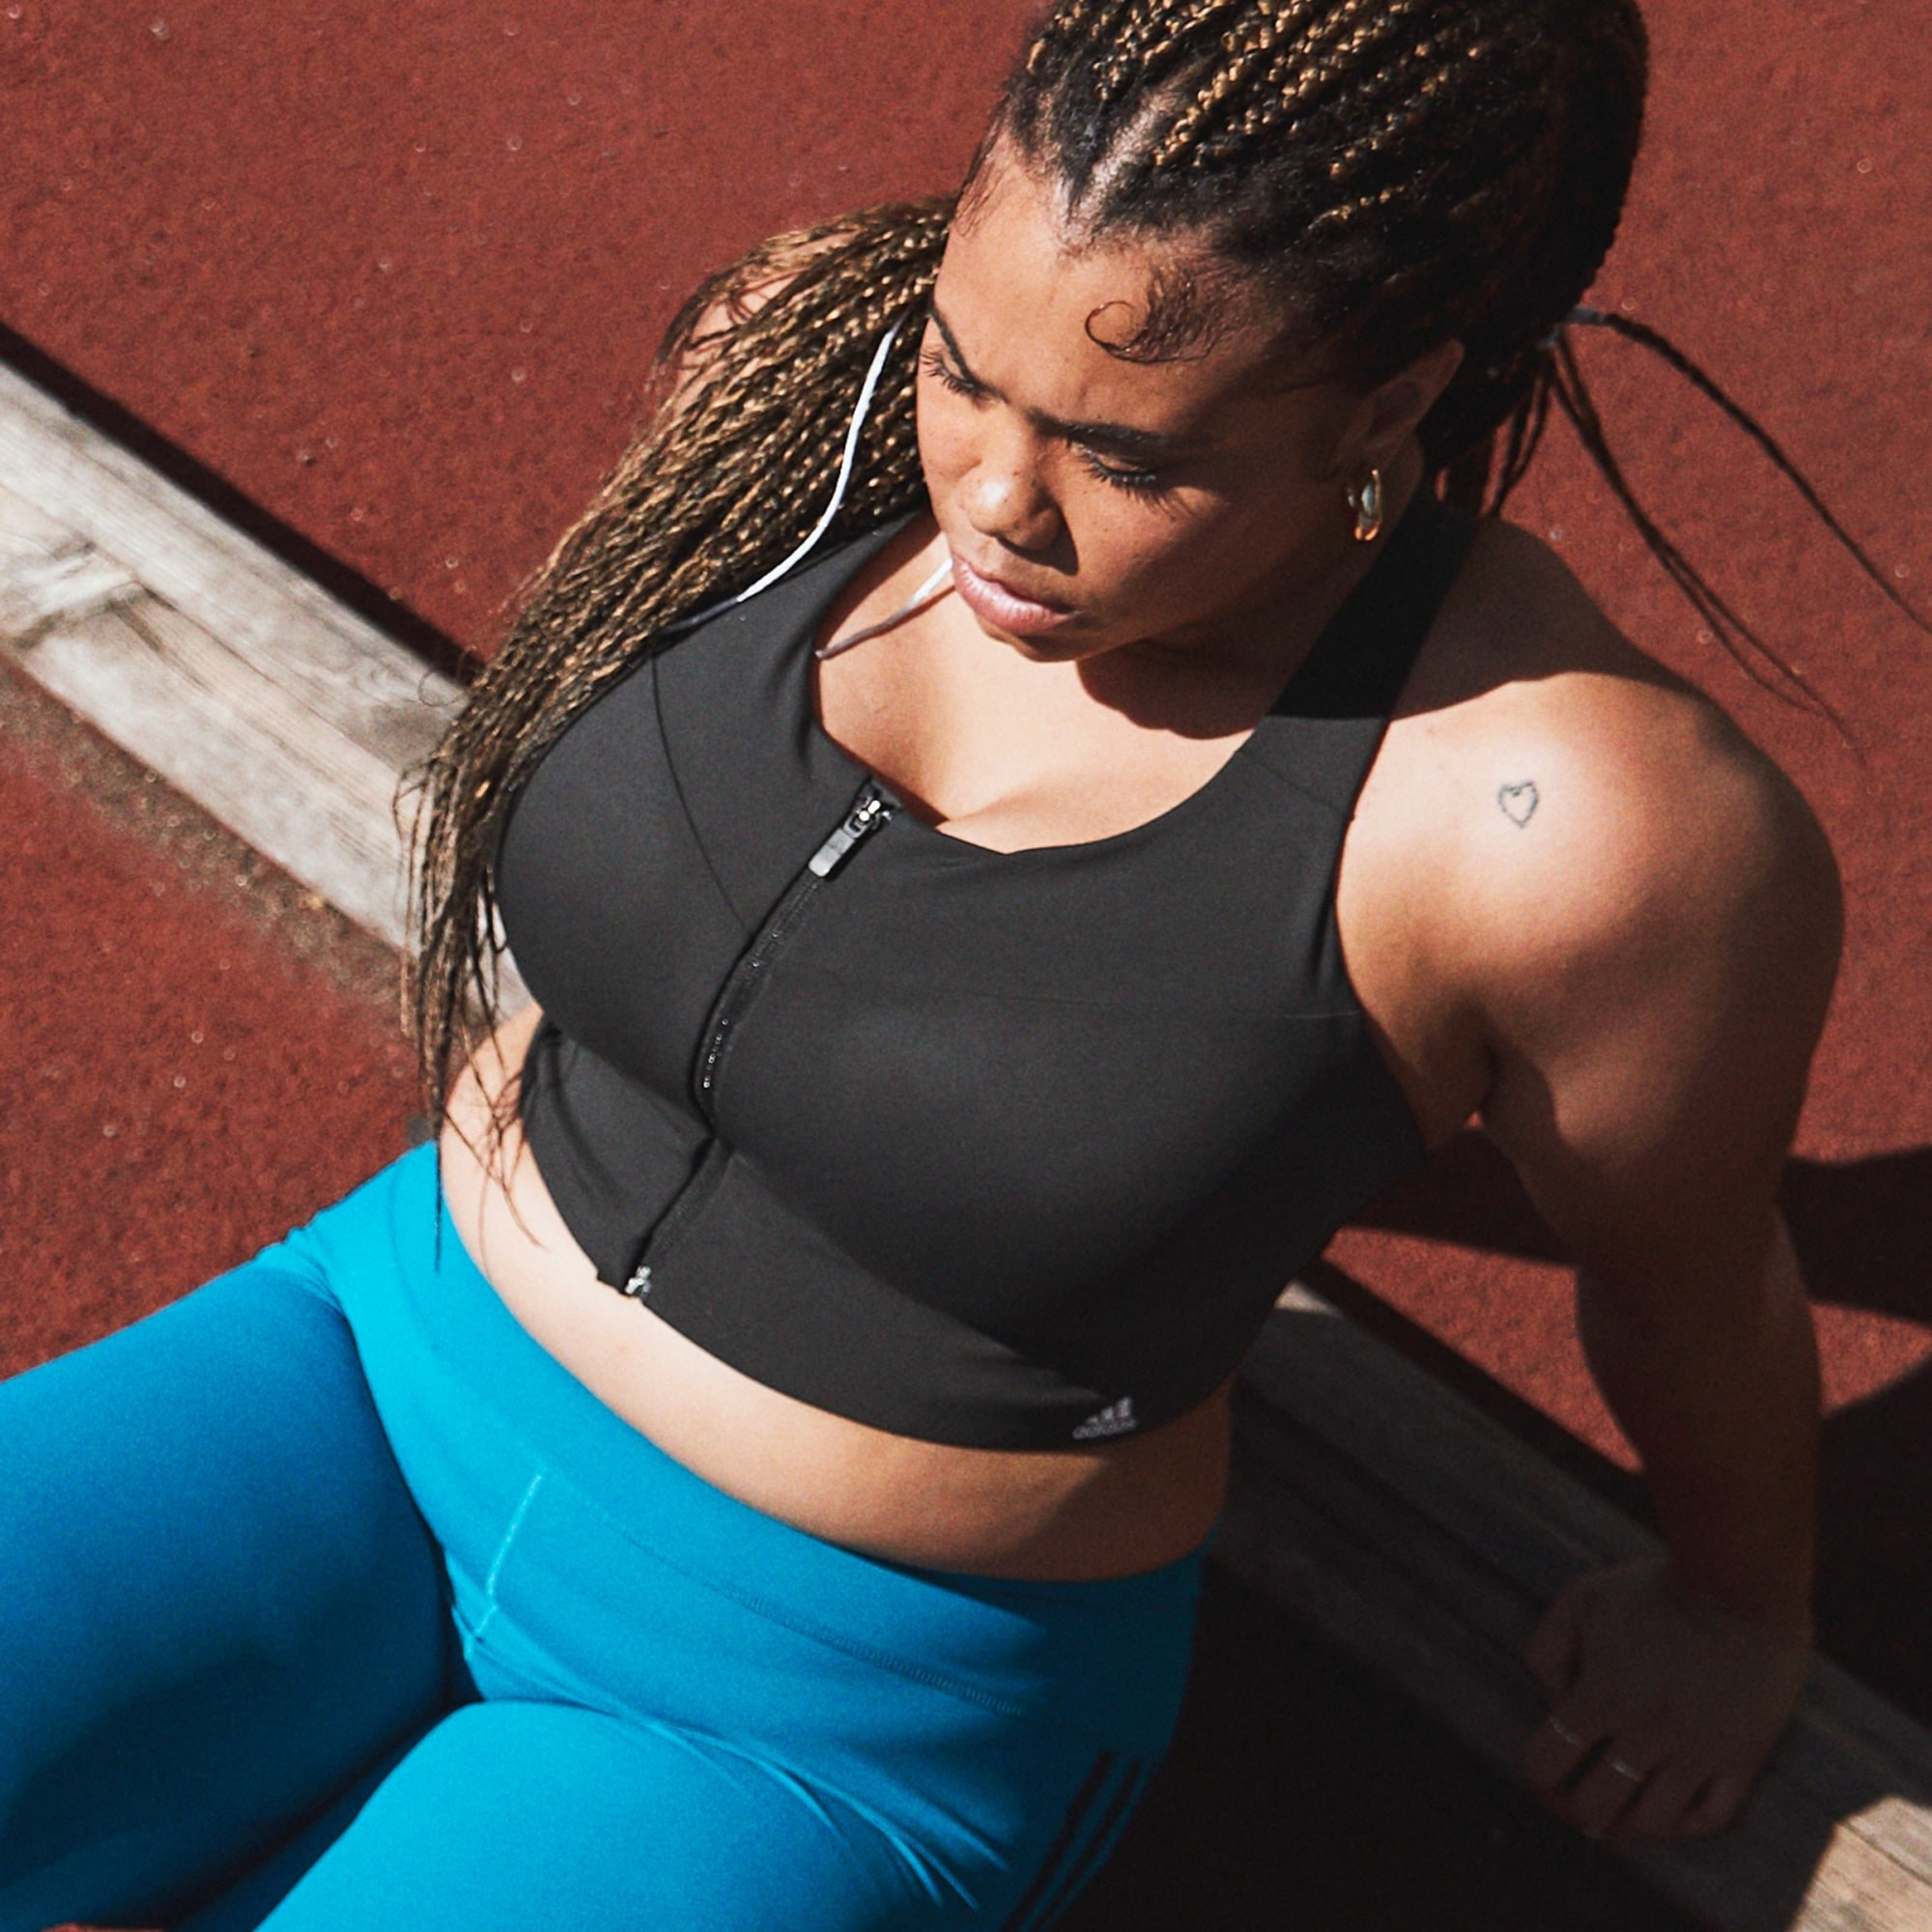 A person wearing a cropped sports bra.